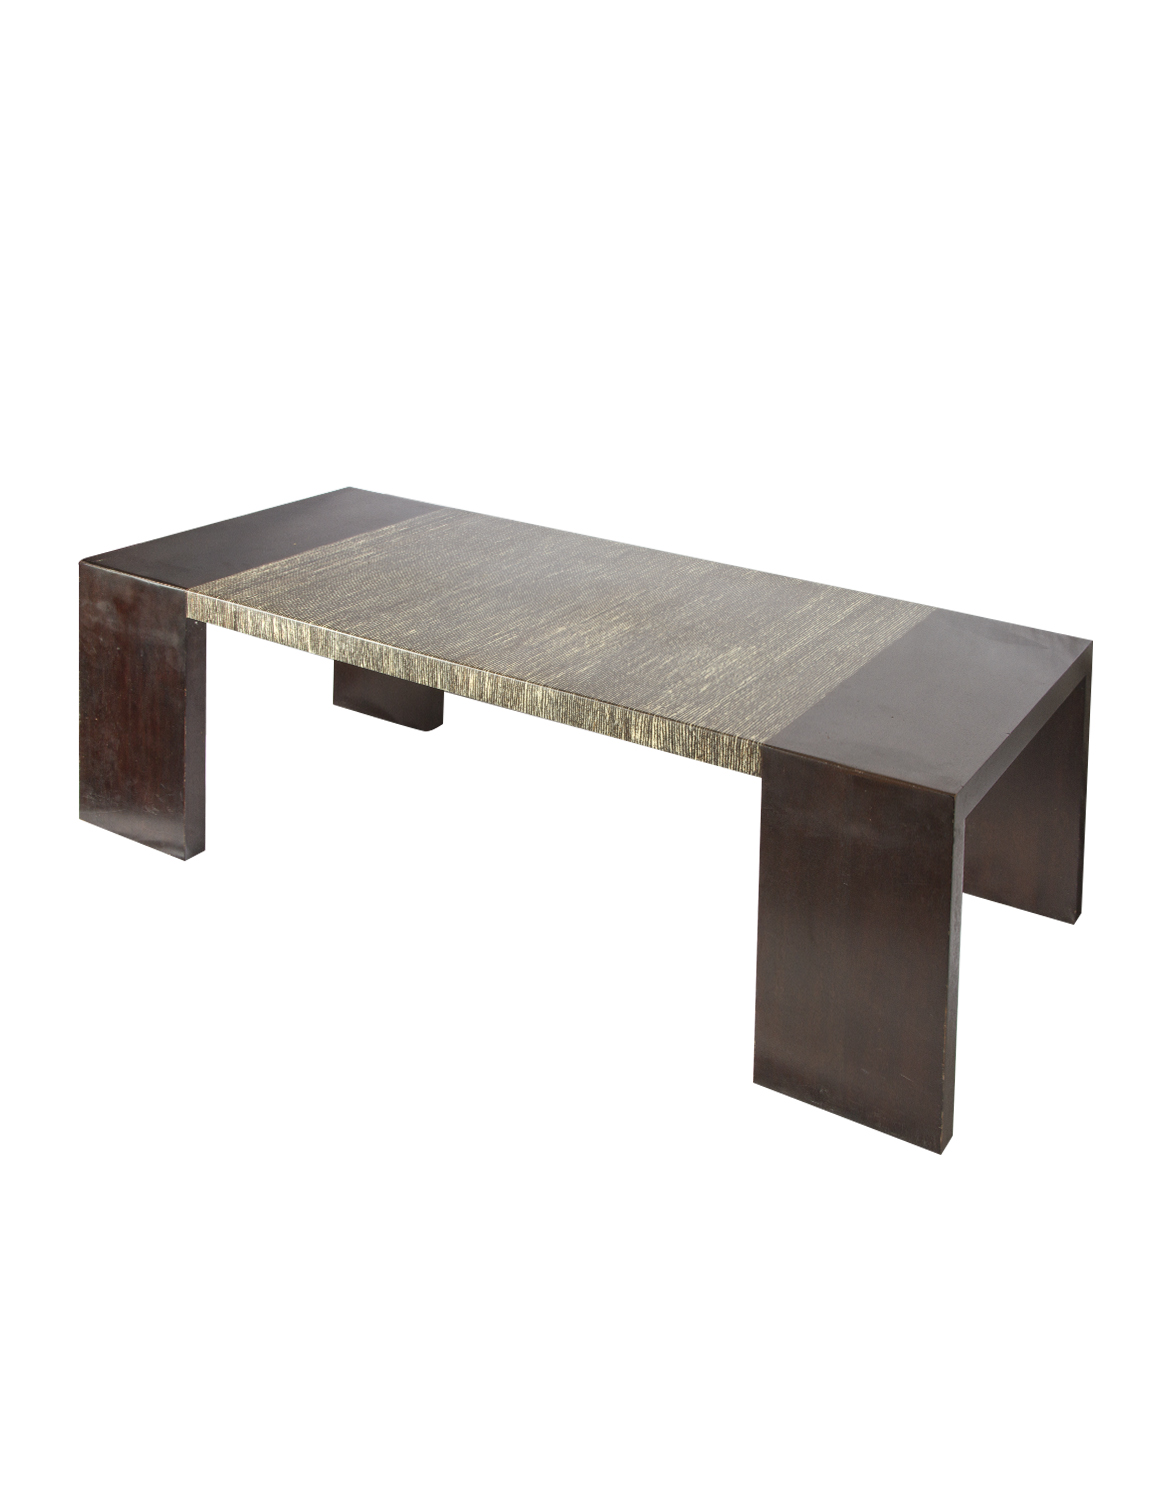 Atauro coffee table in wood